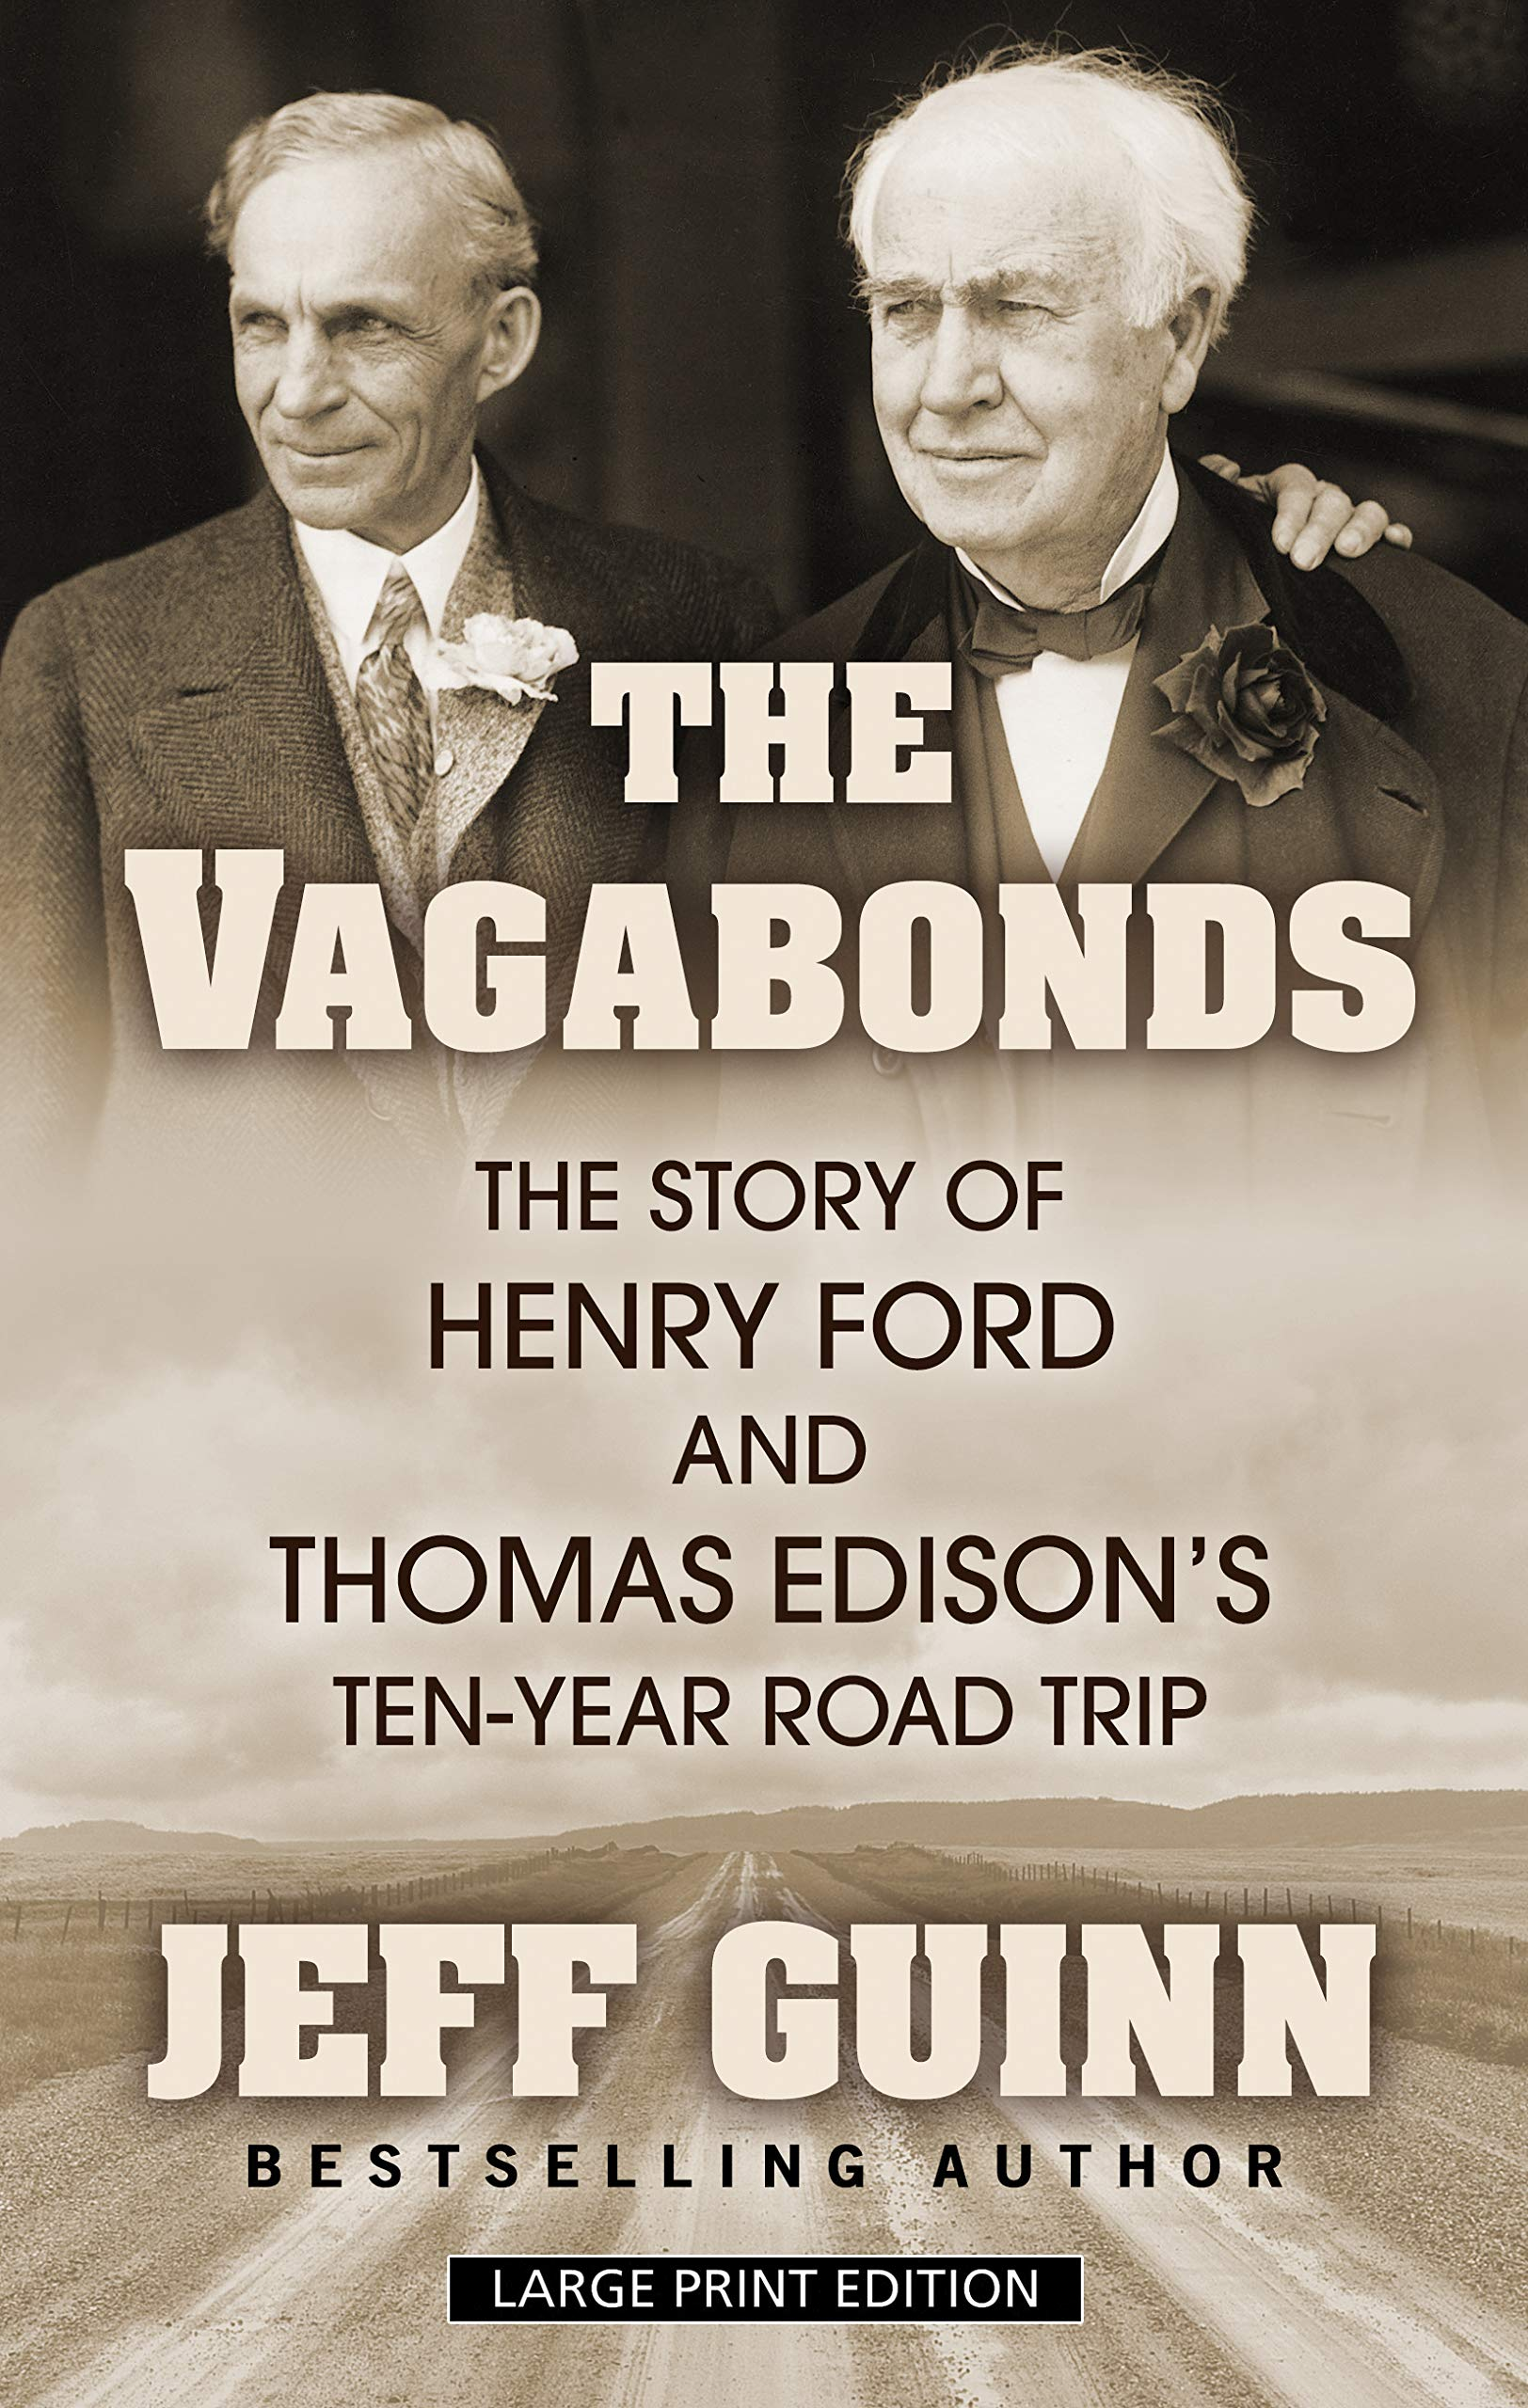 The Vagabonds: The Story of Henry Ford and Thomas Edison's Ten-Year Road Trip (Thorndike Press Large Print Biographies and Memoir)